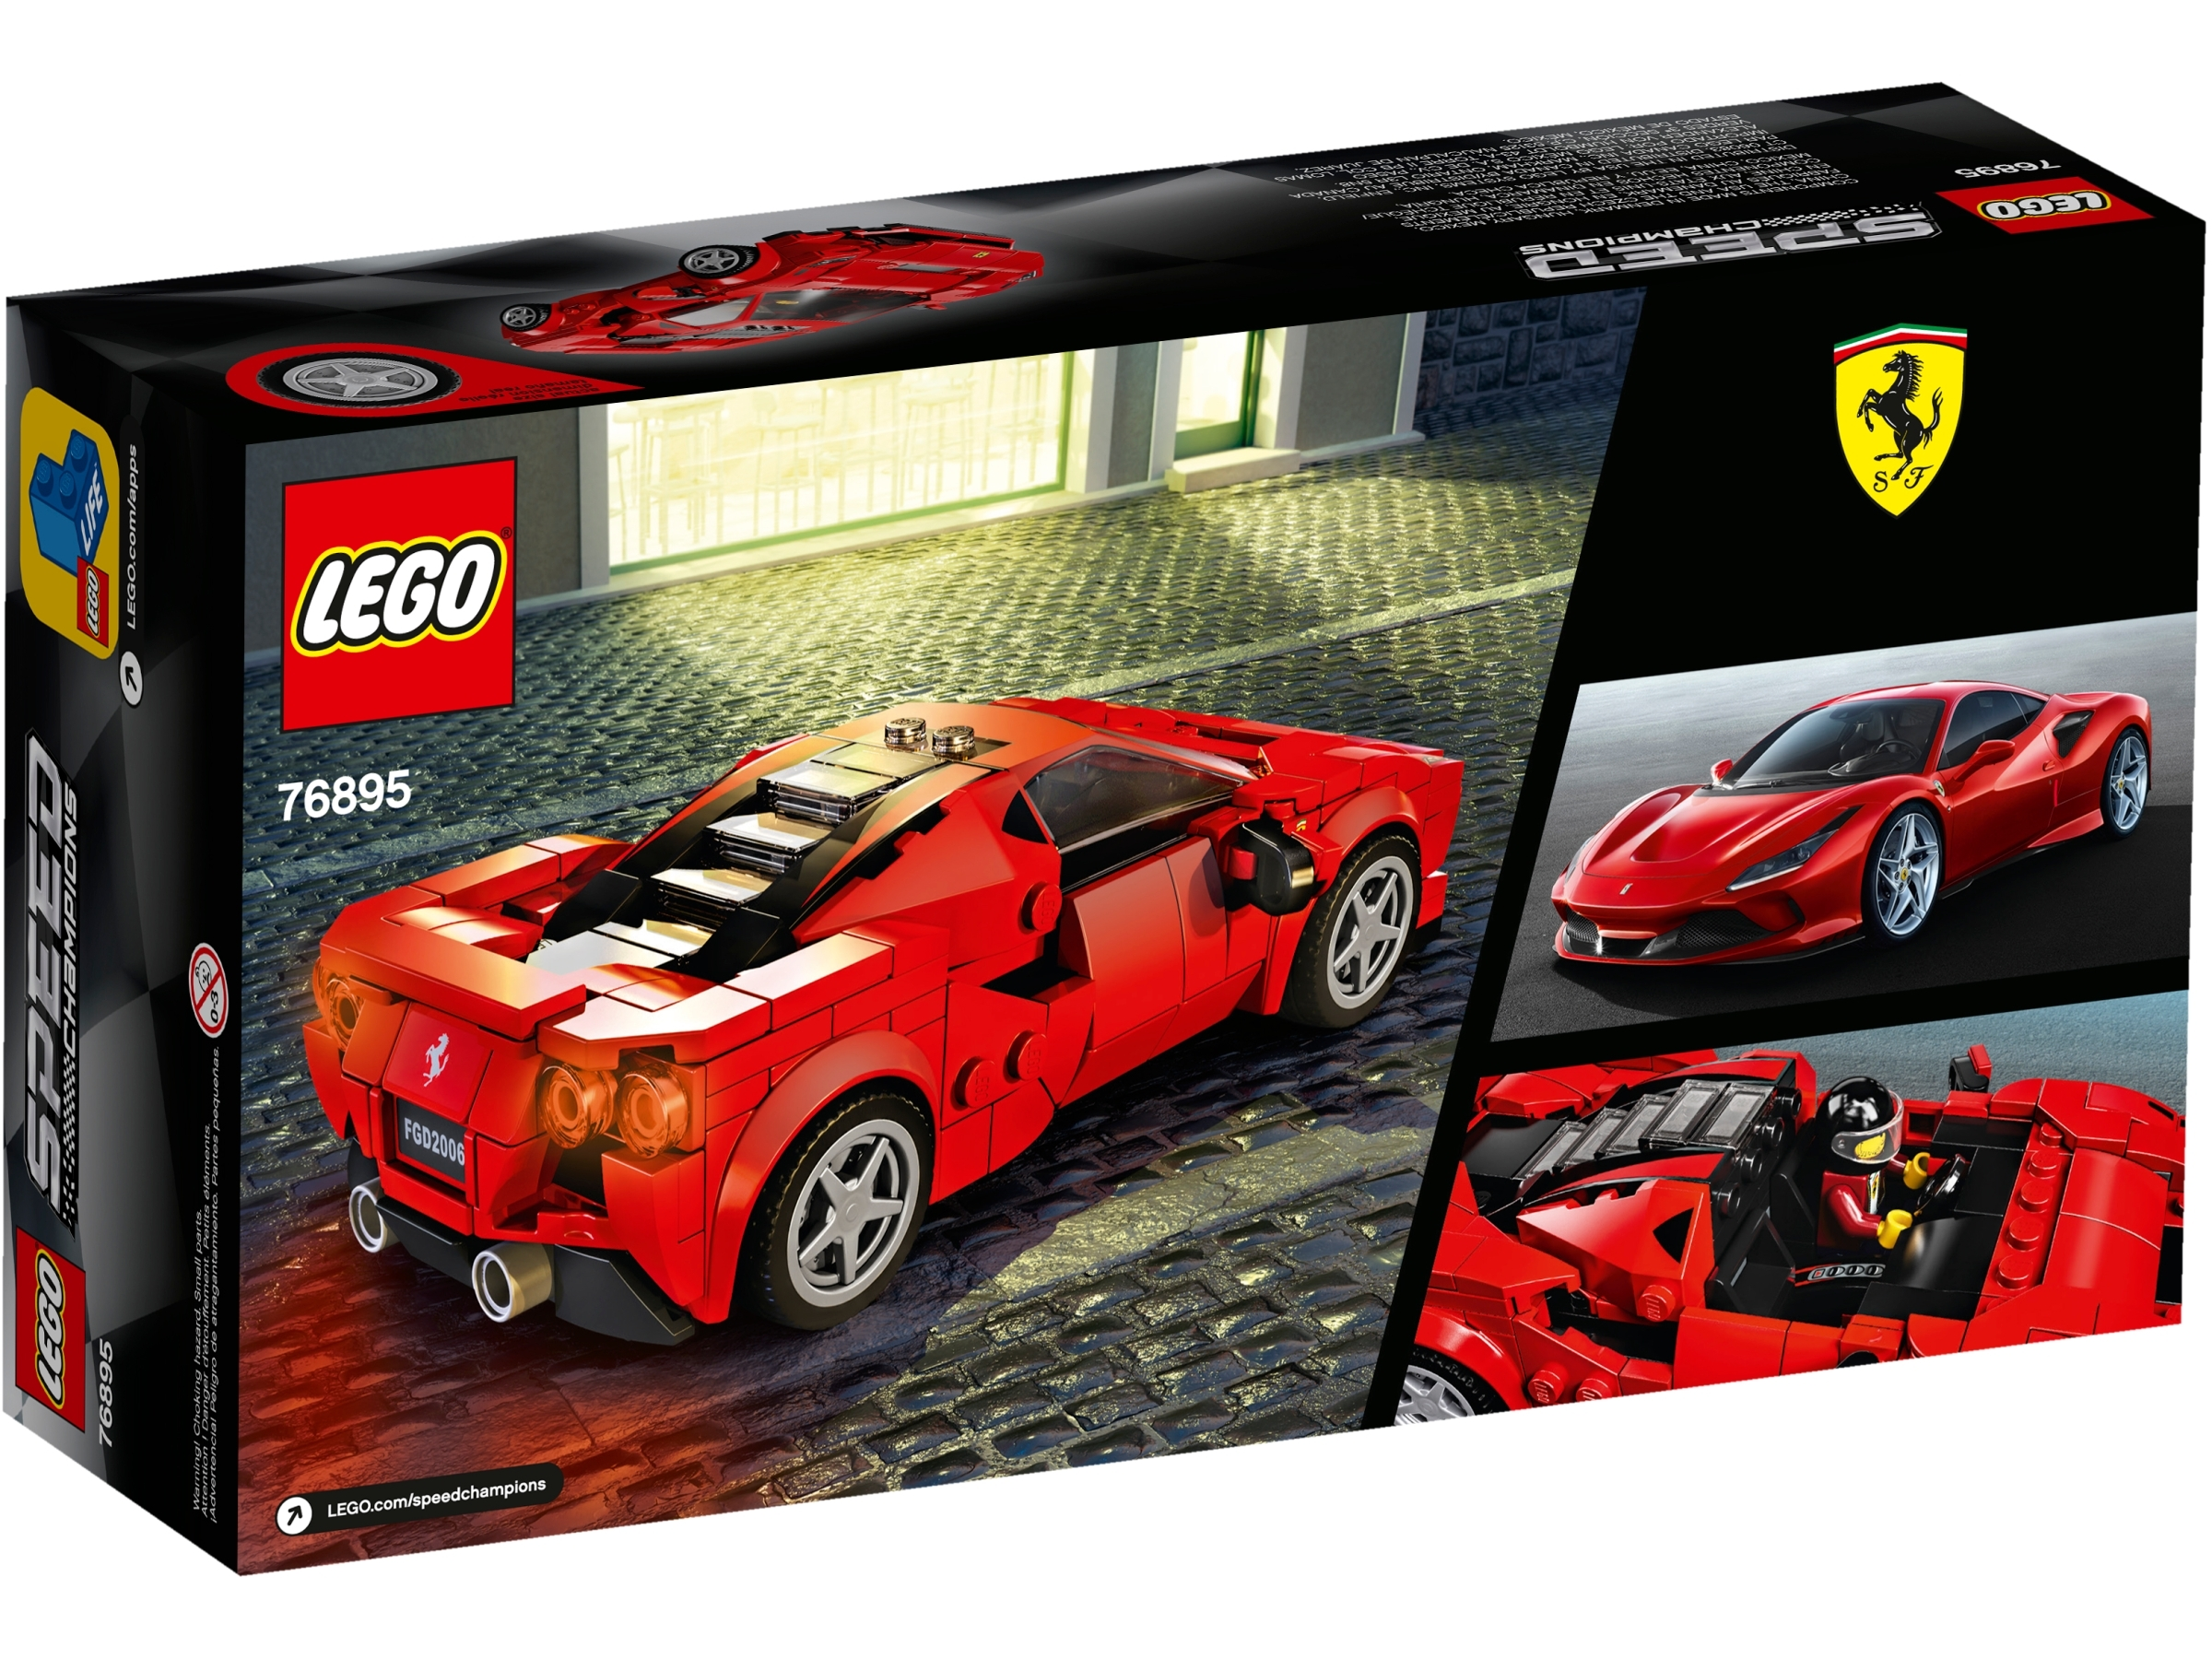 LEGO Speed Champions 76895 Ferrari F8 Tributo New 2020 275 Pieces